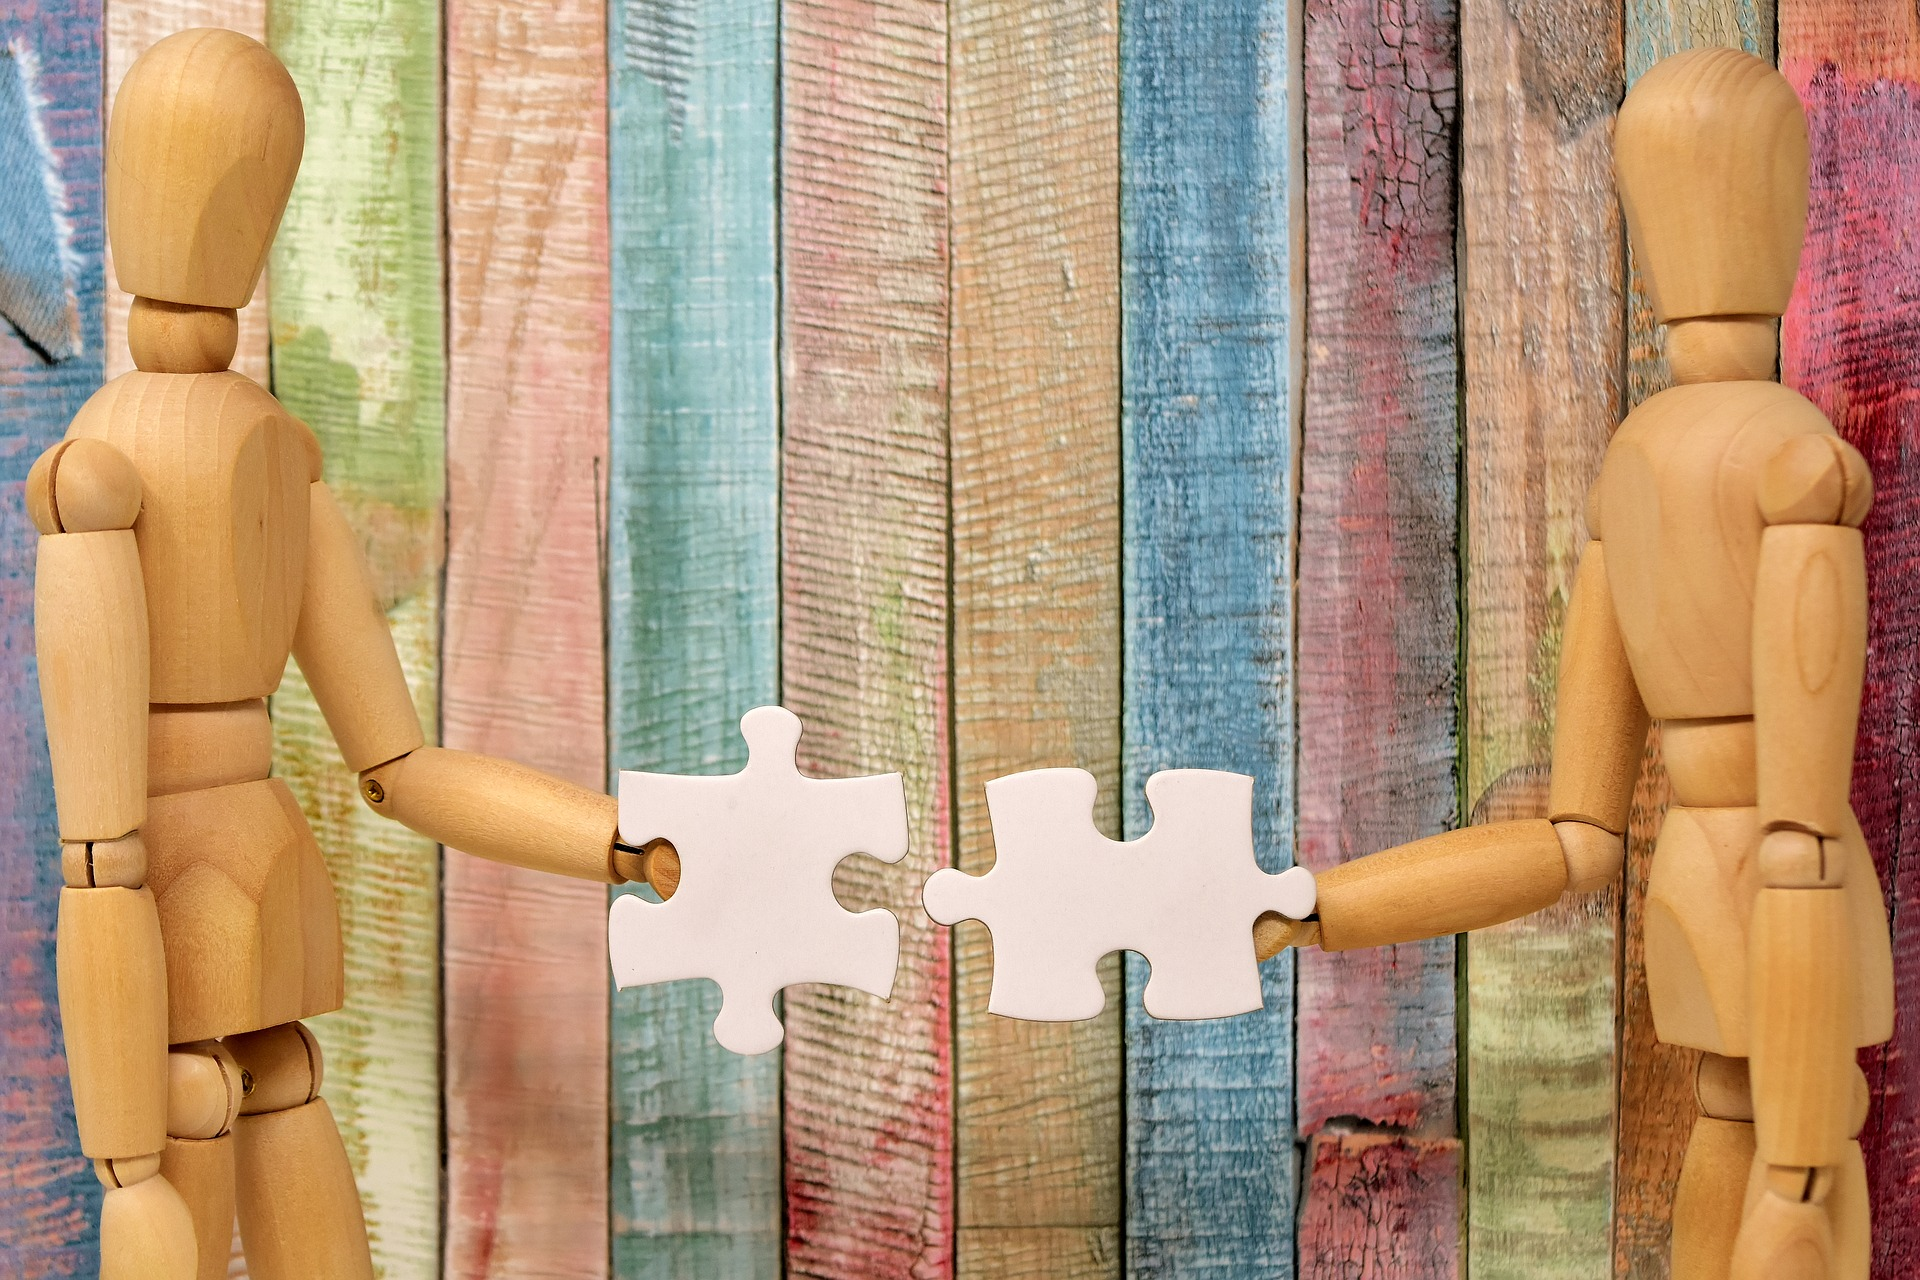 Image of two wood mannequins. Each is offering a puzzle piece to the other.